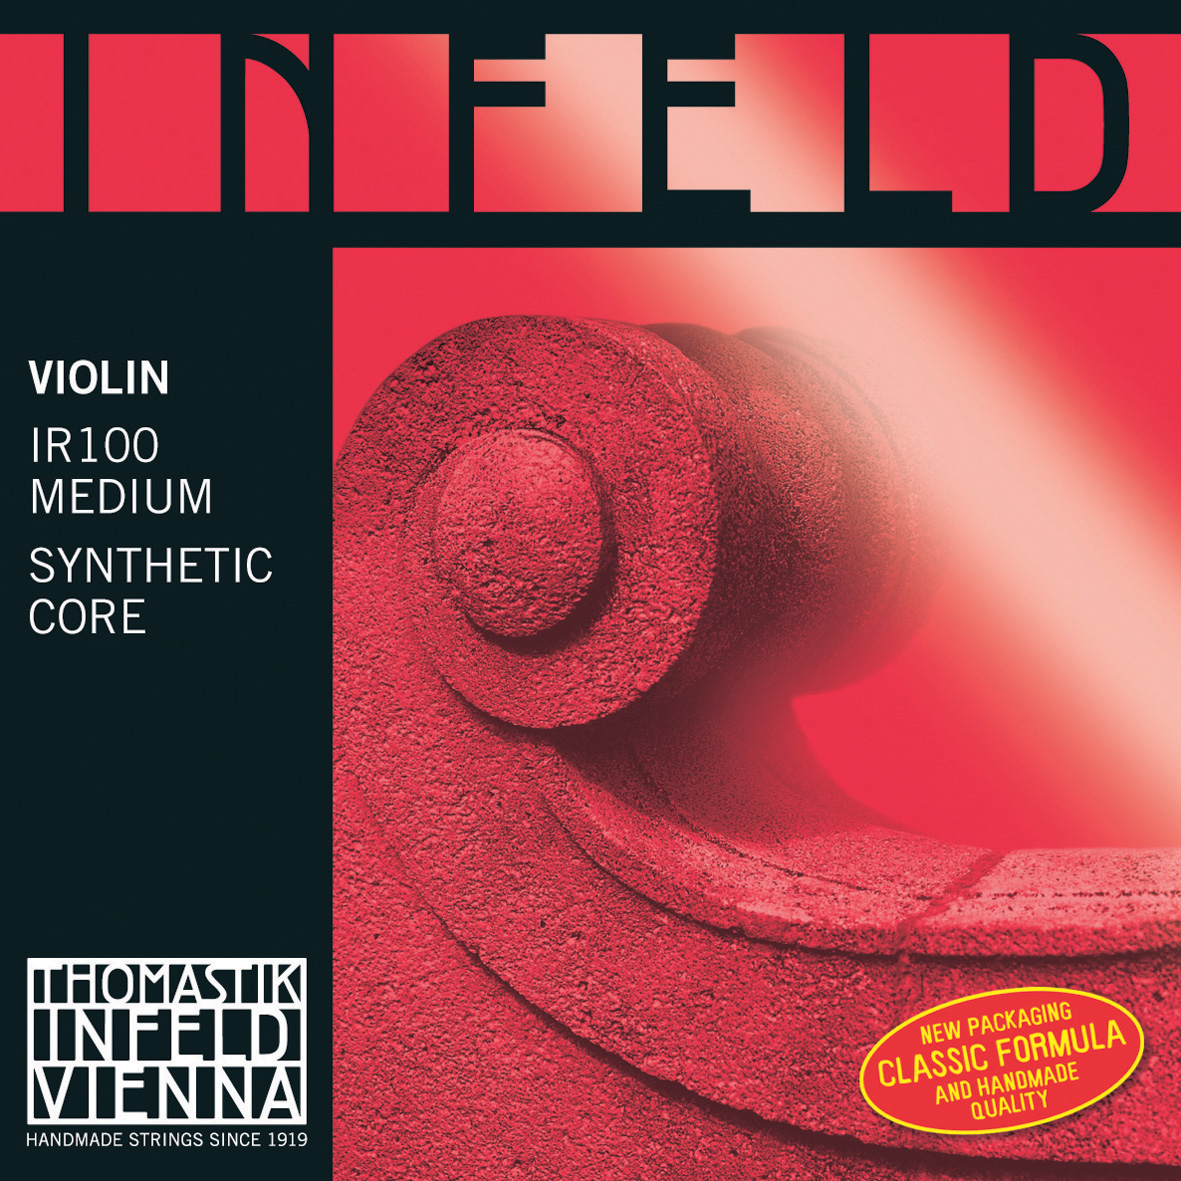 Infeld Red Thomastik Strings